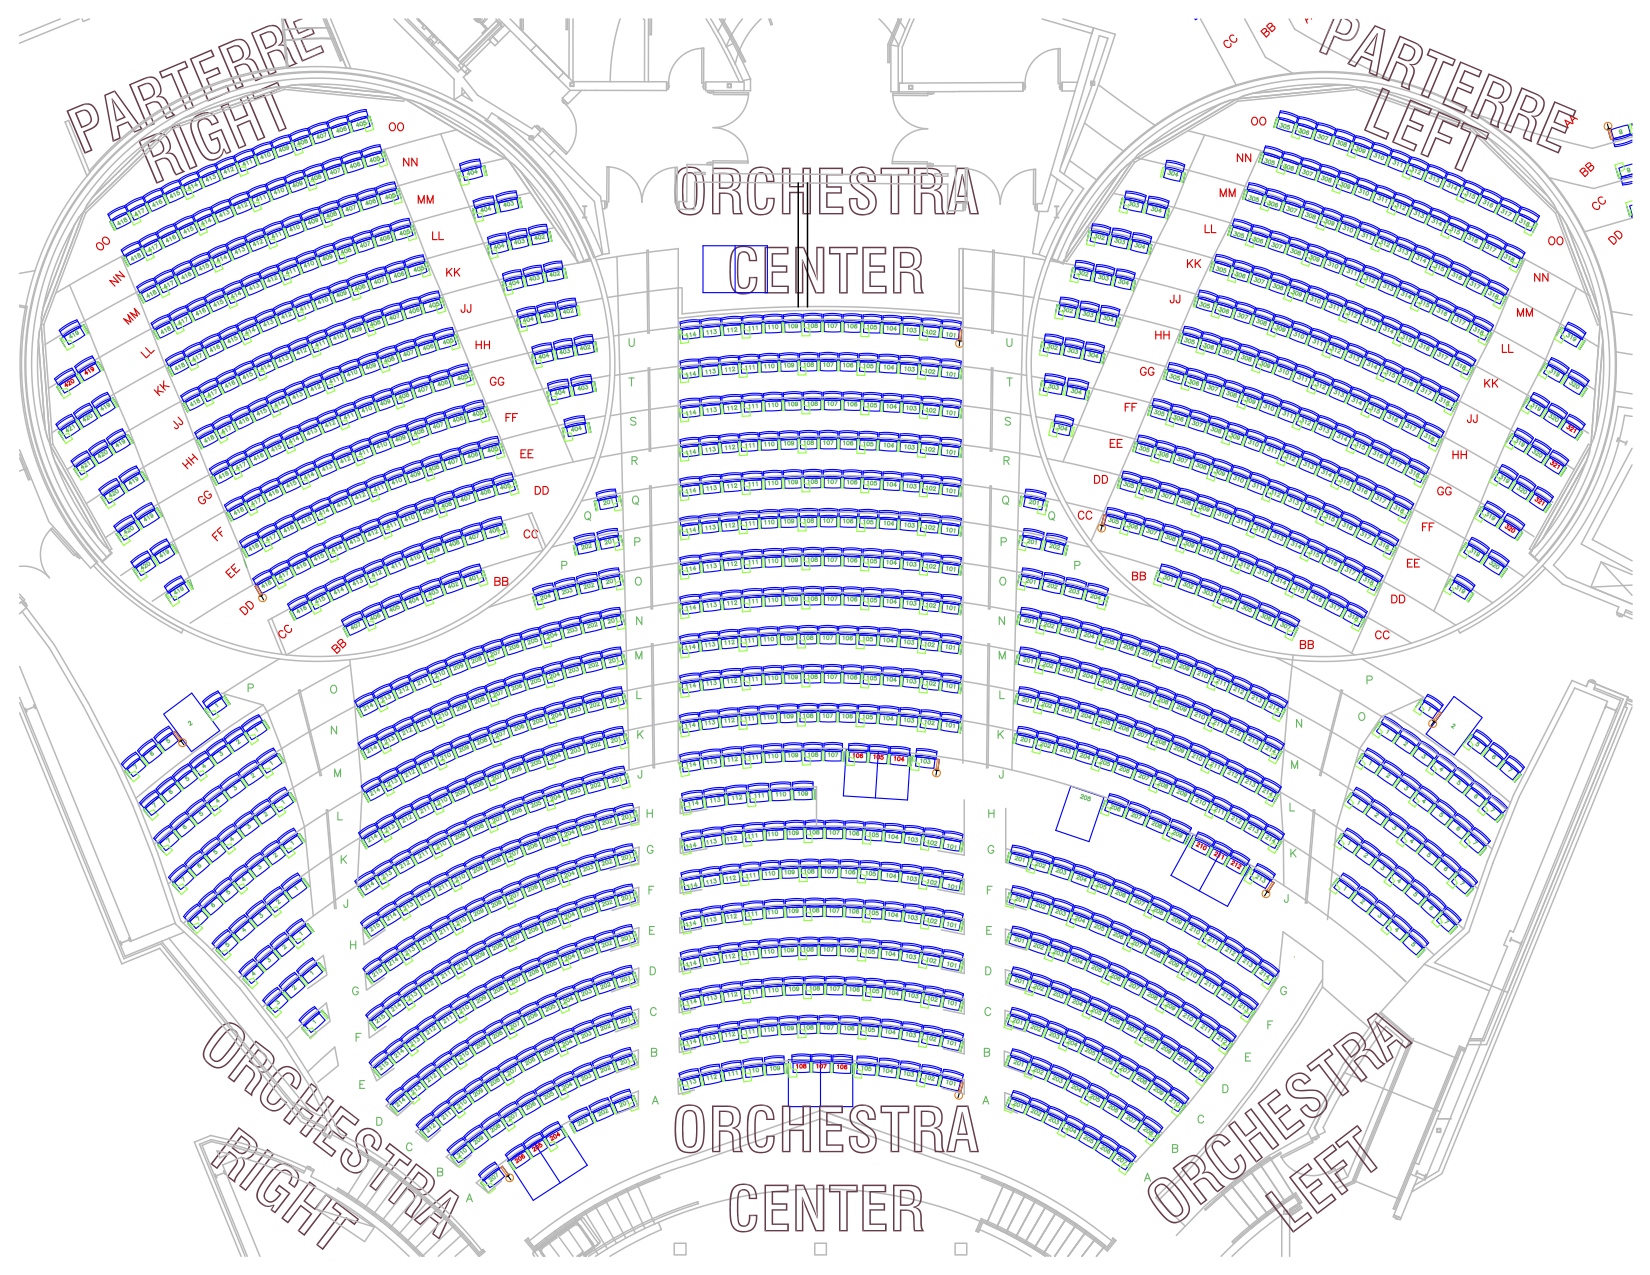 WCPAC+Seating+Diagram+Final+4+4-7-09+Choir.jpg